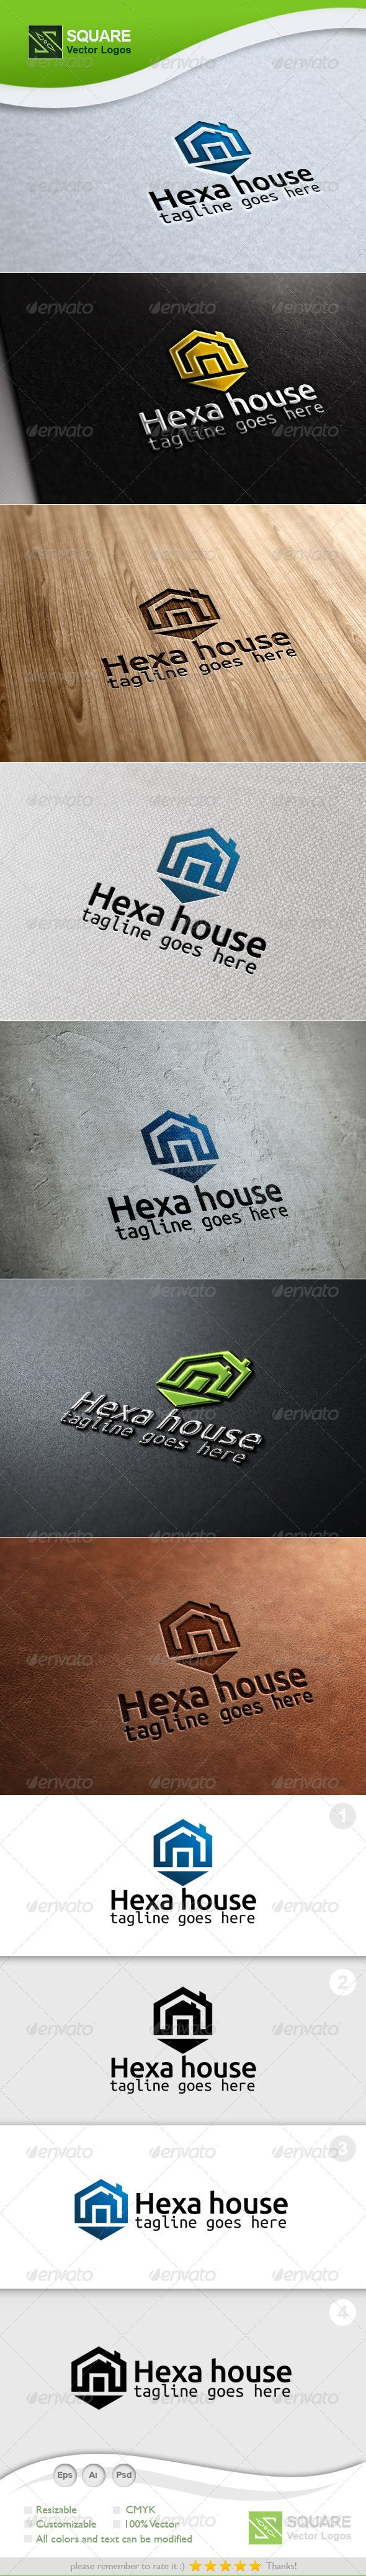 Hexagon, House Vector Logo Template — Photoshop PSD #builder #corporate • Available here → https://graphicriver.net/item/hexagon-house-vector-logo-template/6694695?ref=pxcr